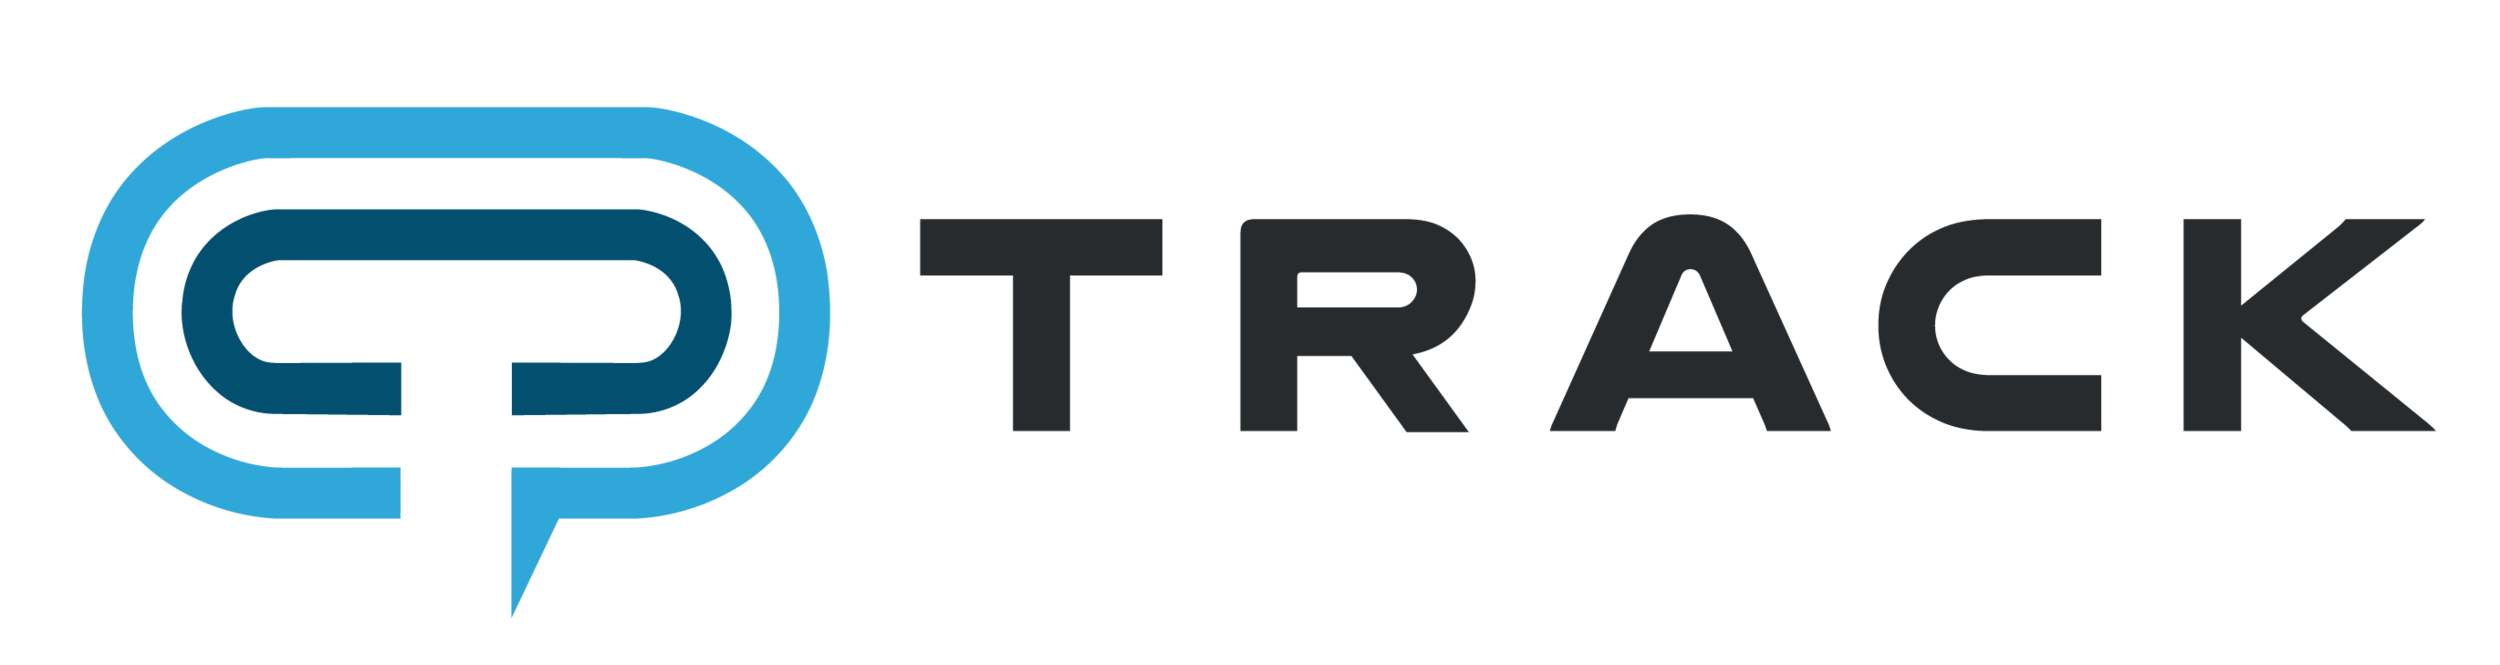 TRACK™ Hospitality Software  is a leading all-in-one cloud communication platform for lodging companies.